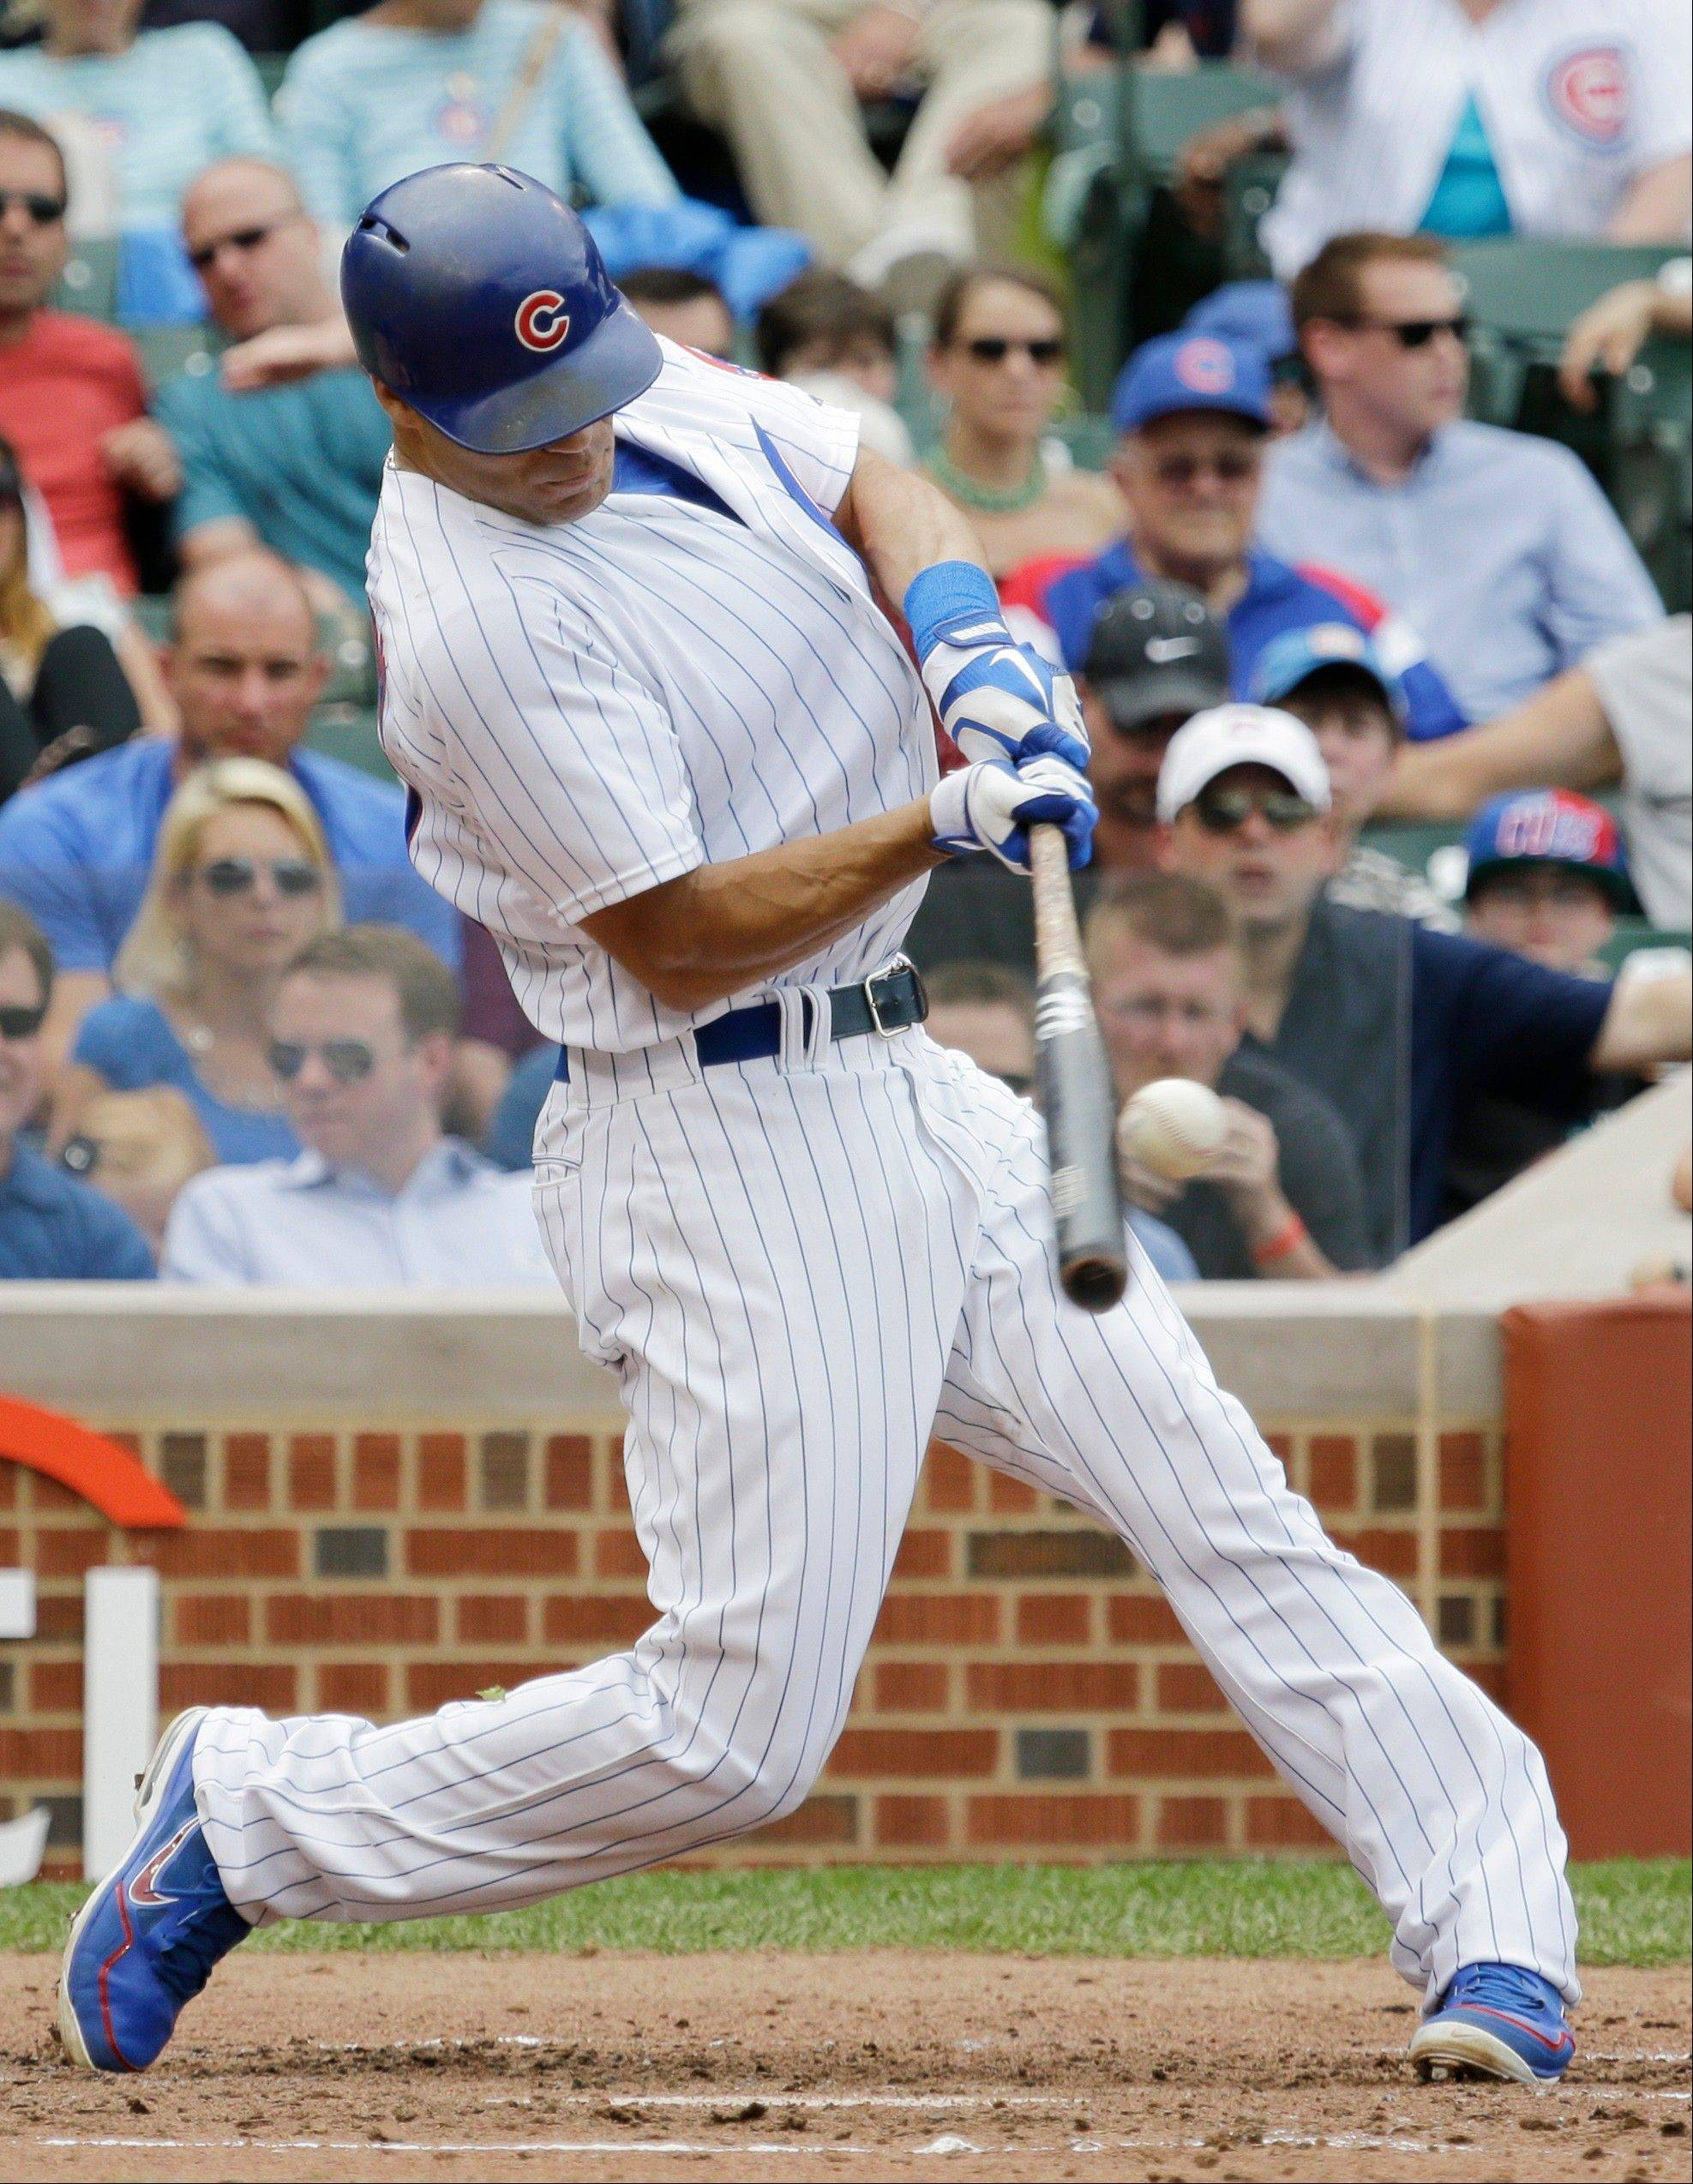 The Cubs' Scott Hairston blasts a grand slam against the Diamondbacks in the third inning Friday at Wrigley Field.